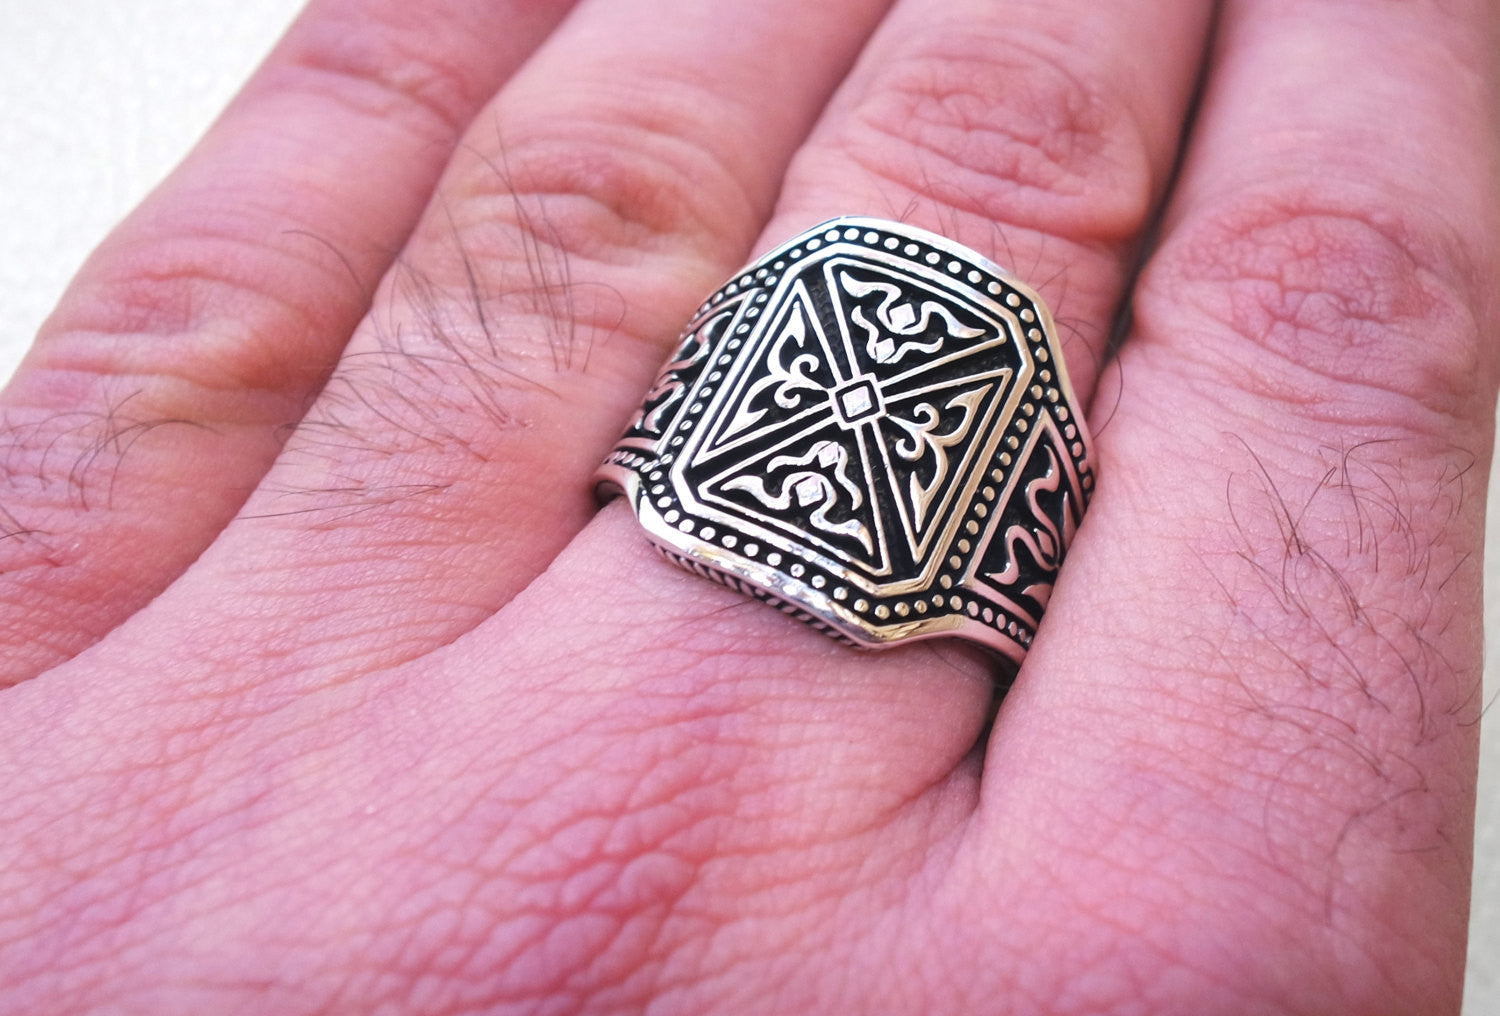 heavy wide man ring celtic sterling silver 925 heavy rectangular shape any size antique style high quality jewelry